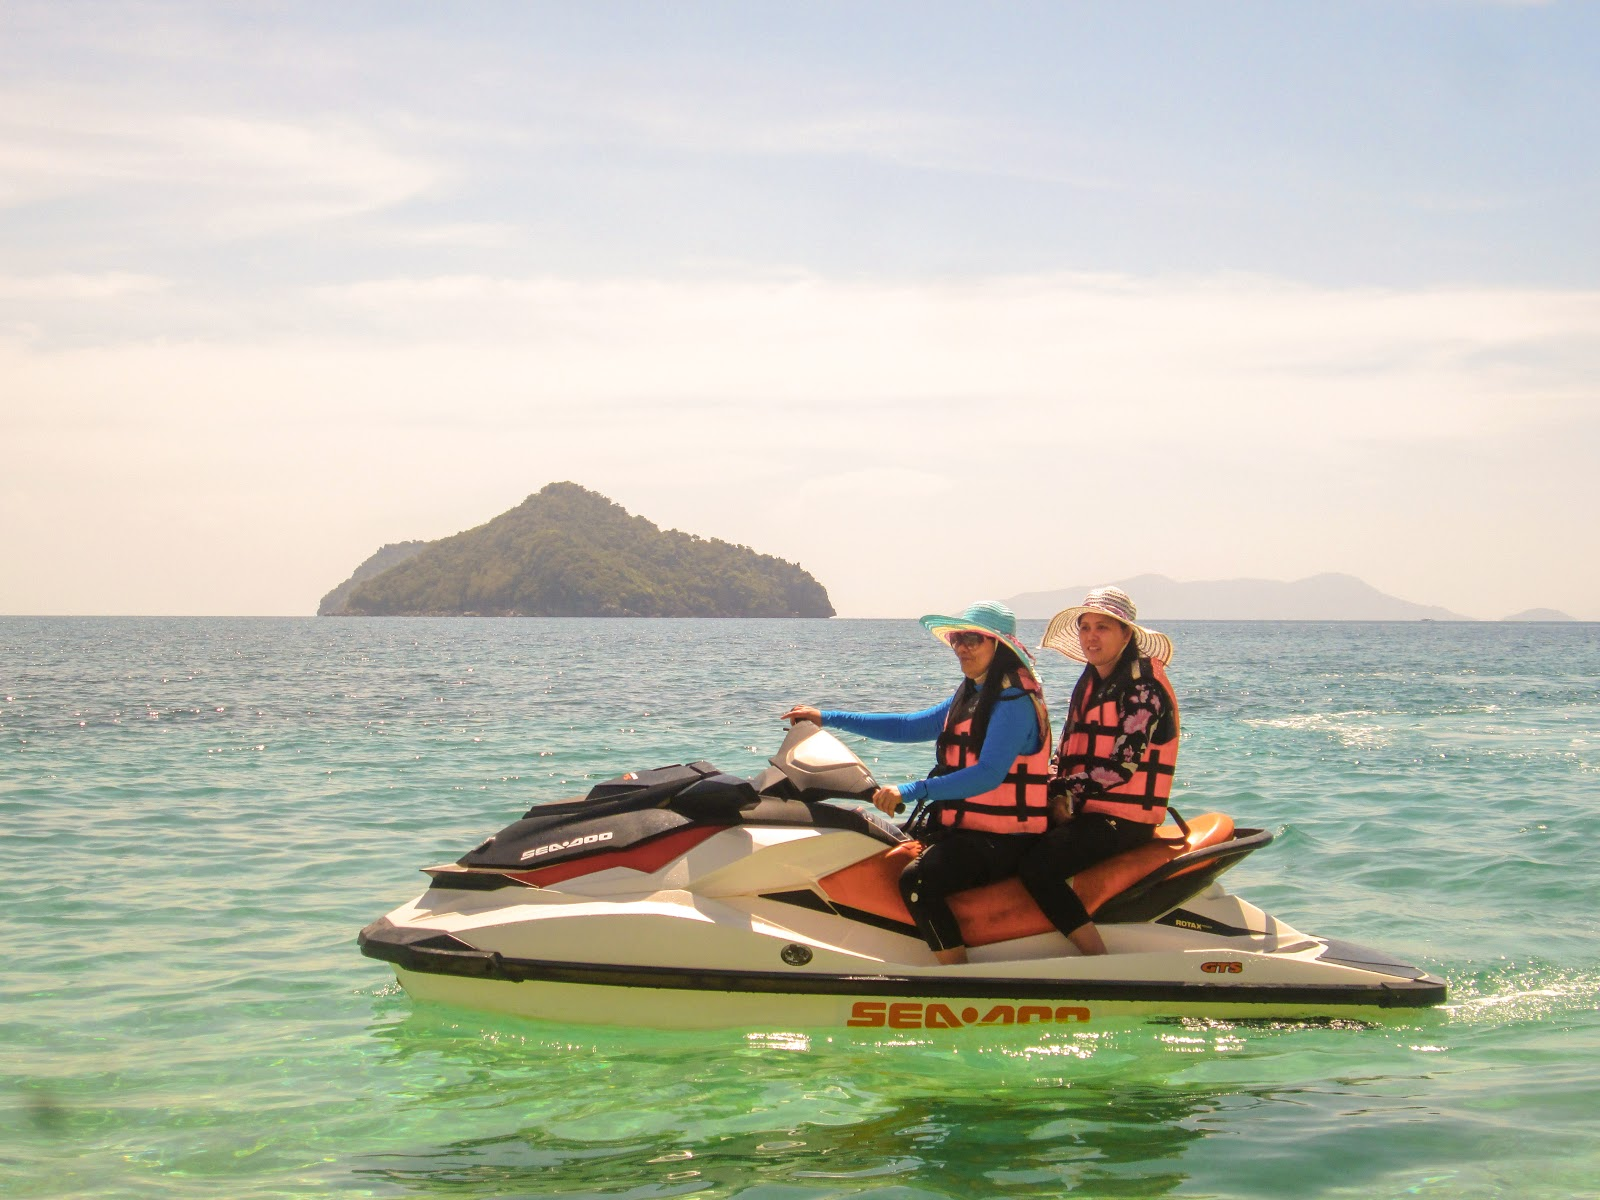 Jet ski at Antonia Beach Resort in Gigantes Island